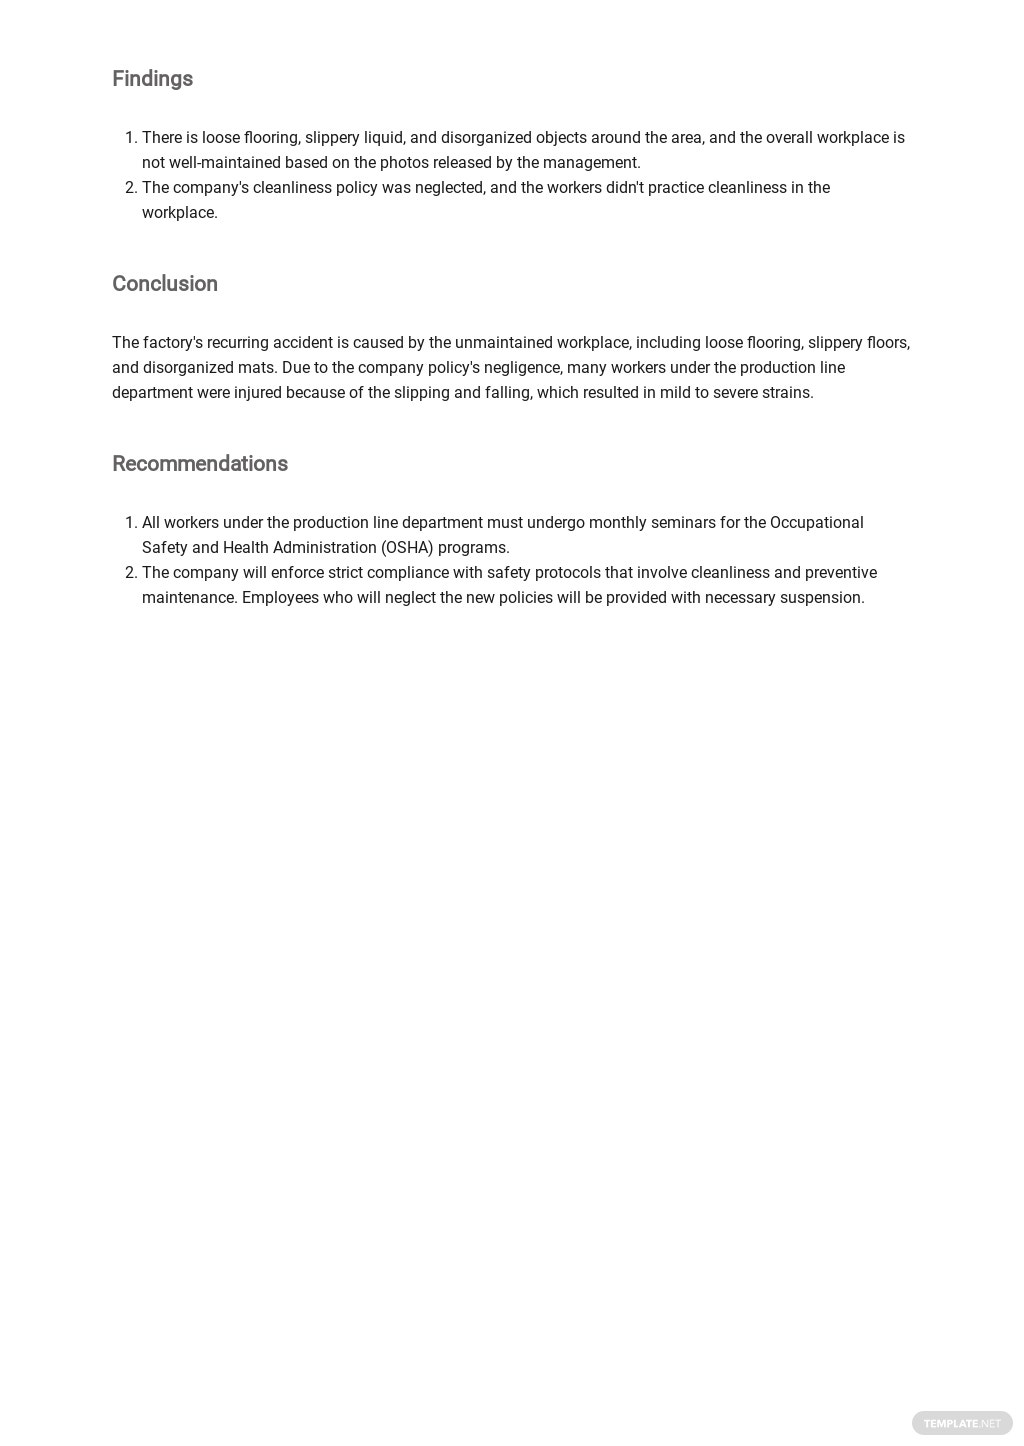 Free Daily Safety Report Template 2.jpe